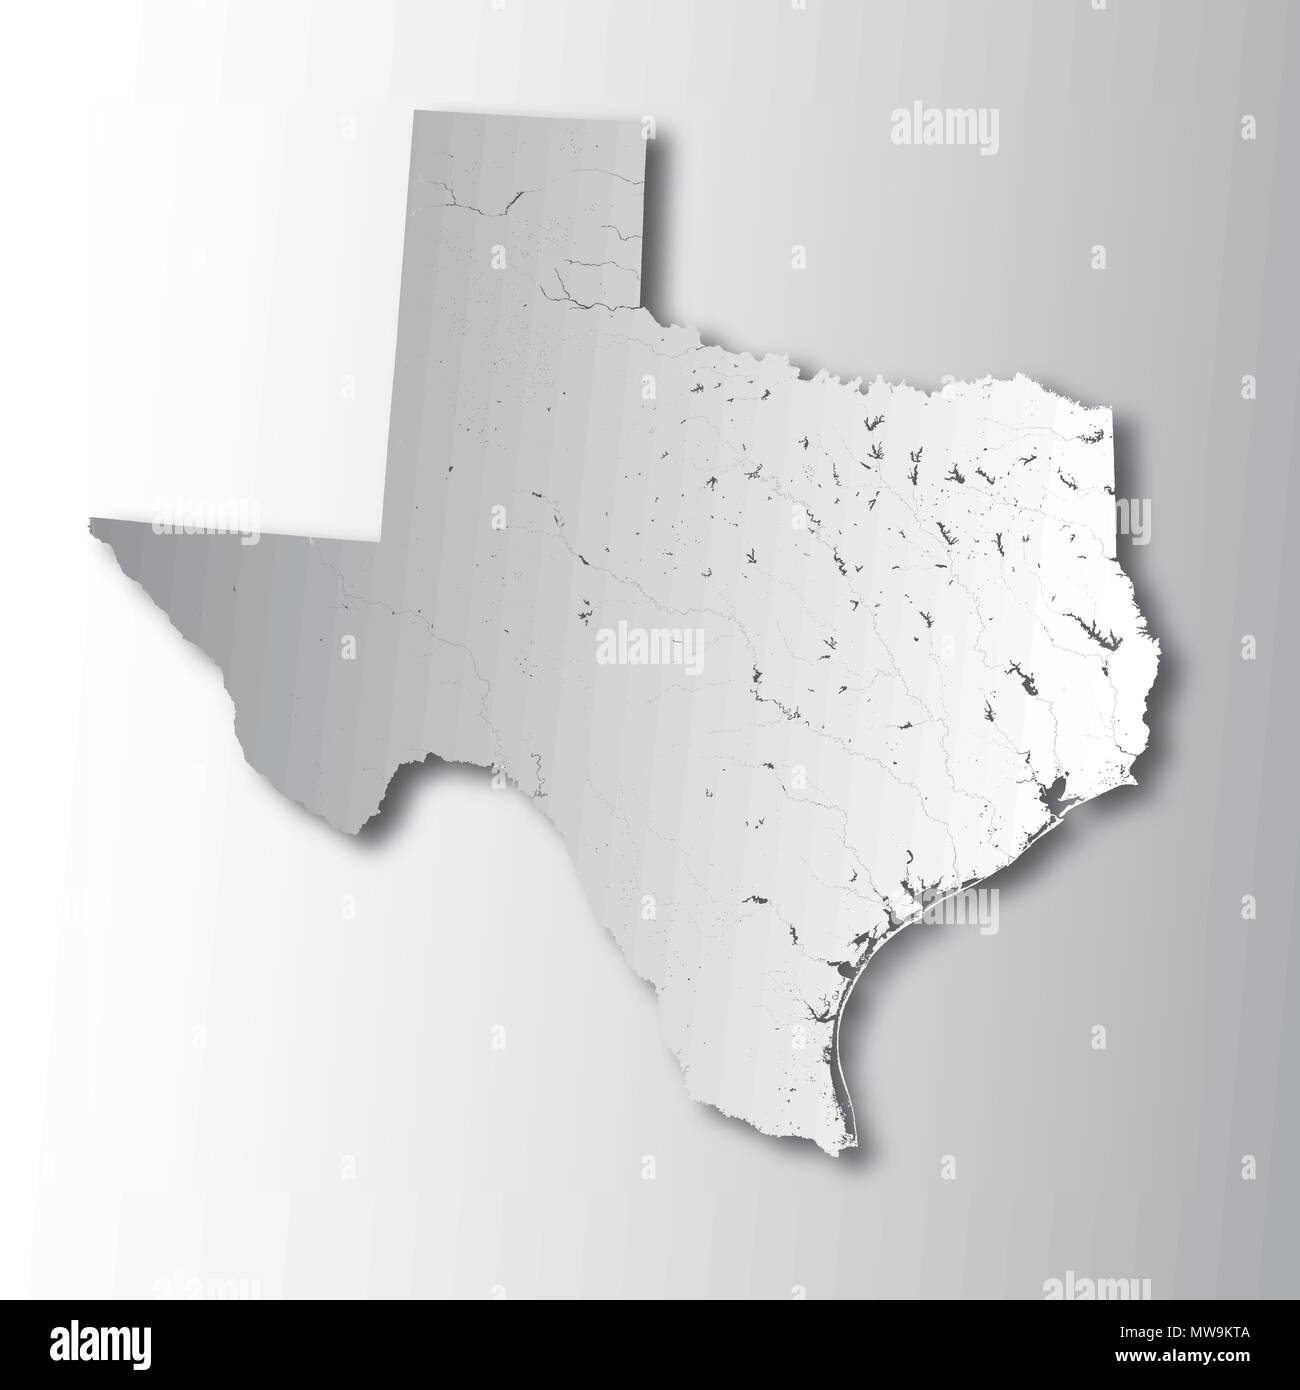 U.S. states - map of Texas with paper cut effect. Hand made. Rivers and lakes are shown. Please look at my other images of cartographic series - they  - Stock Vector